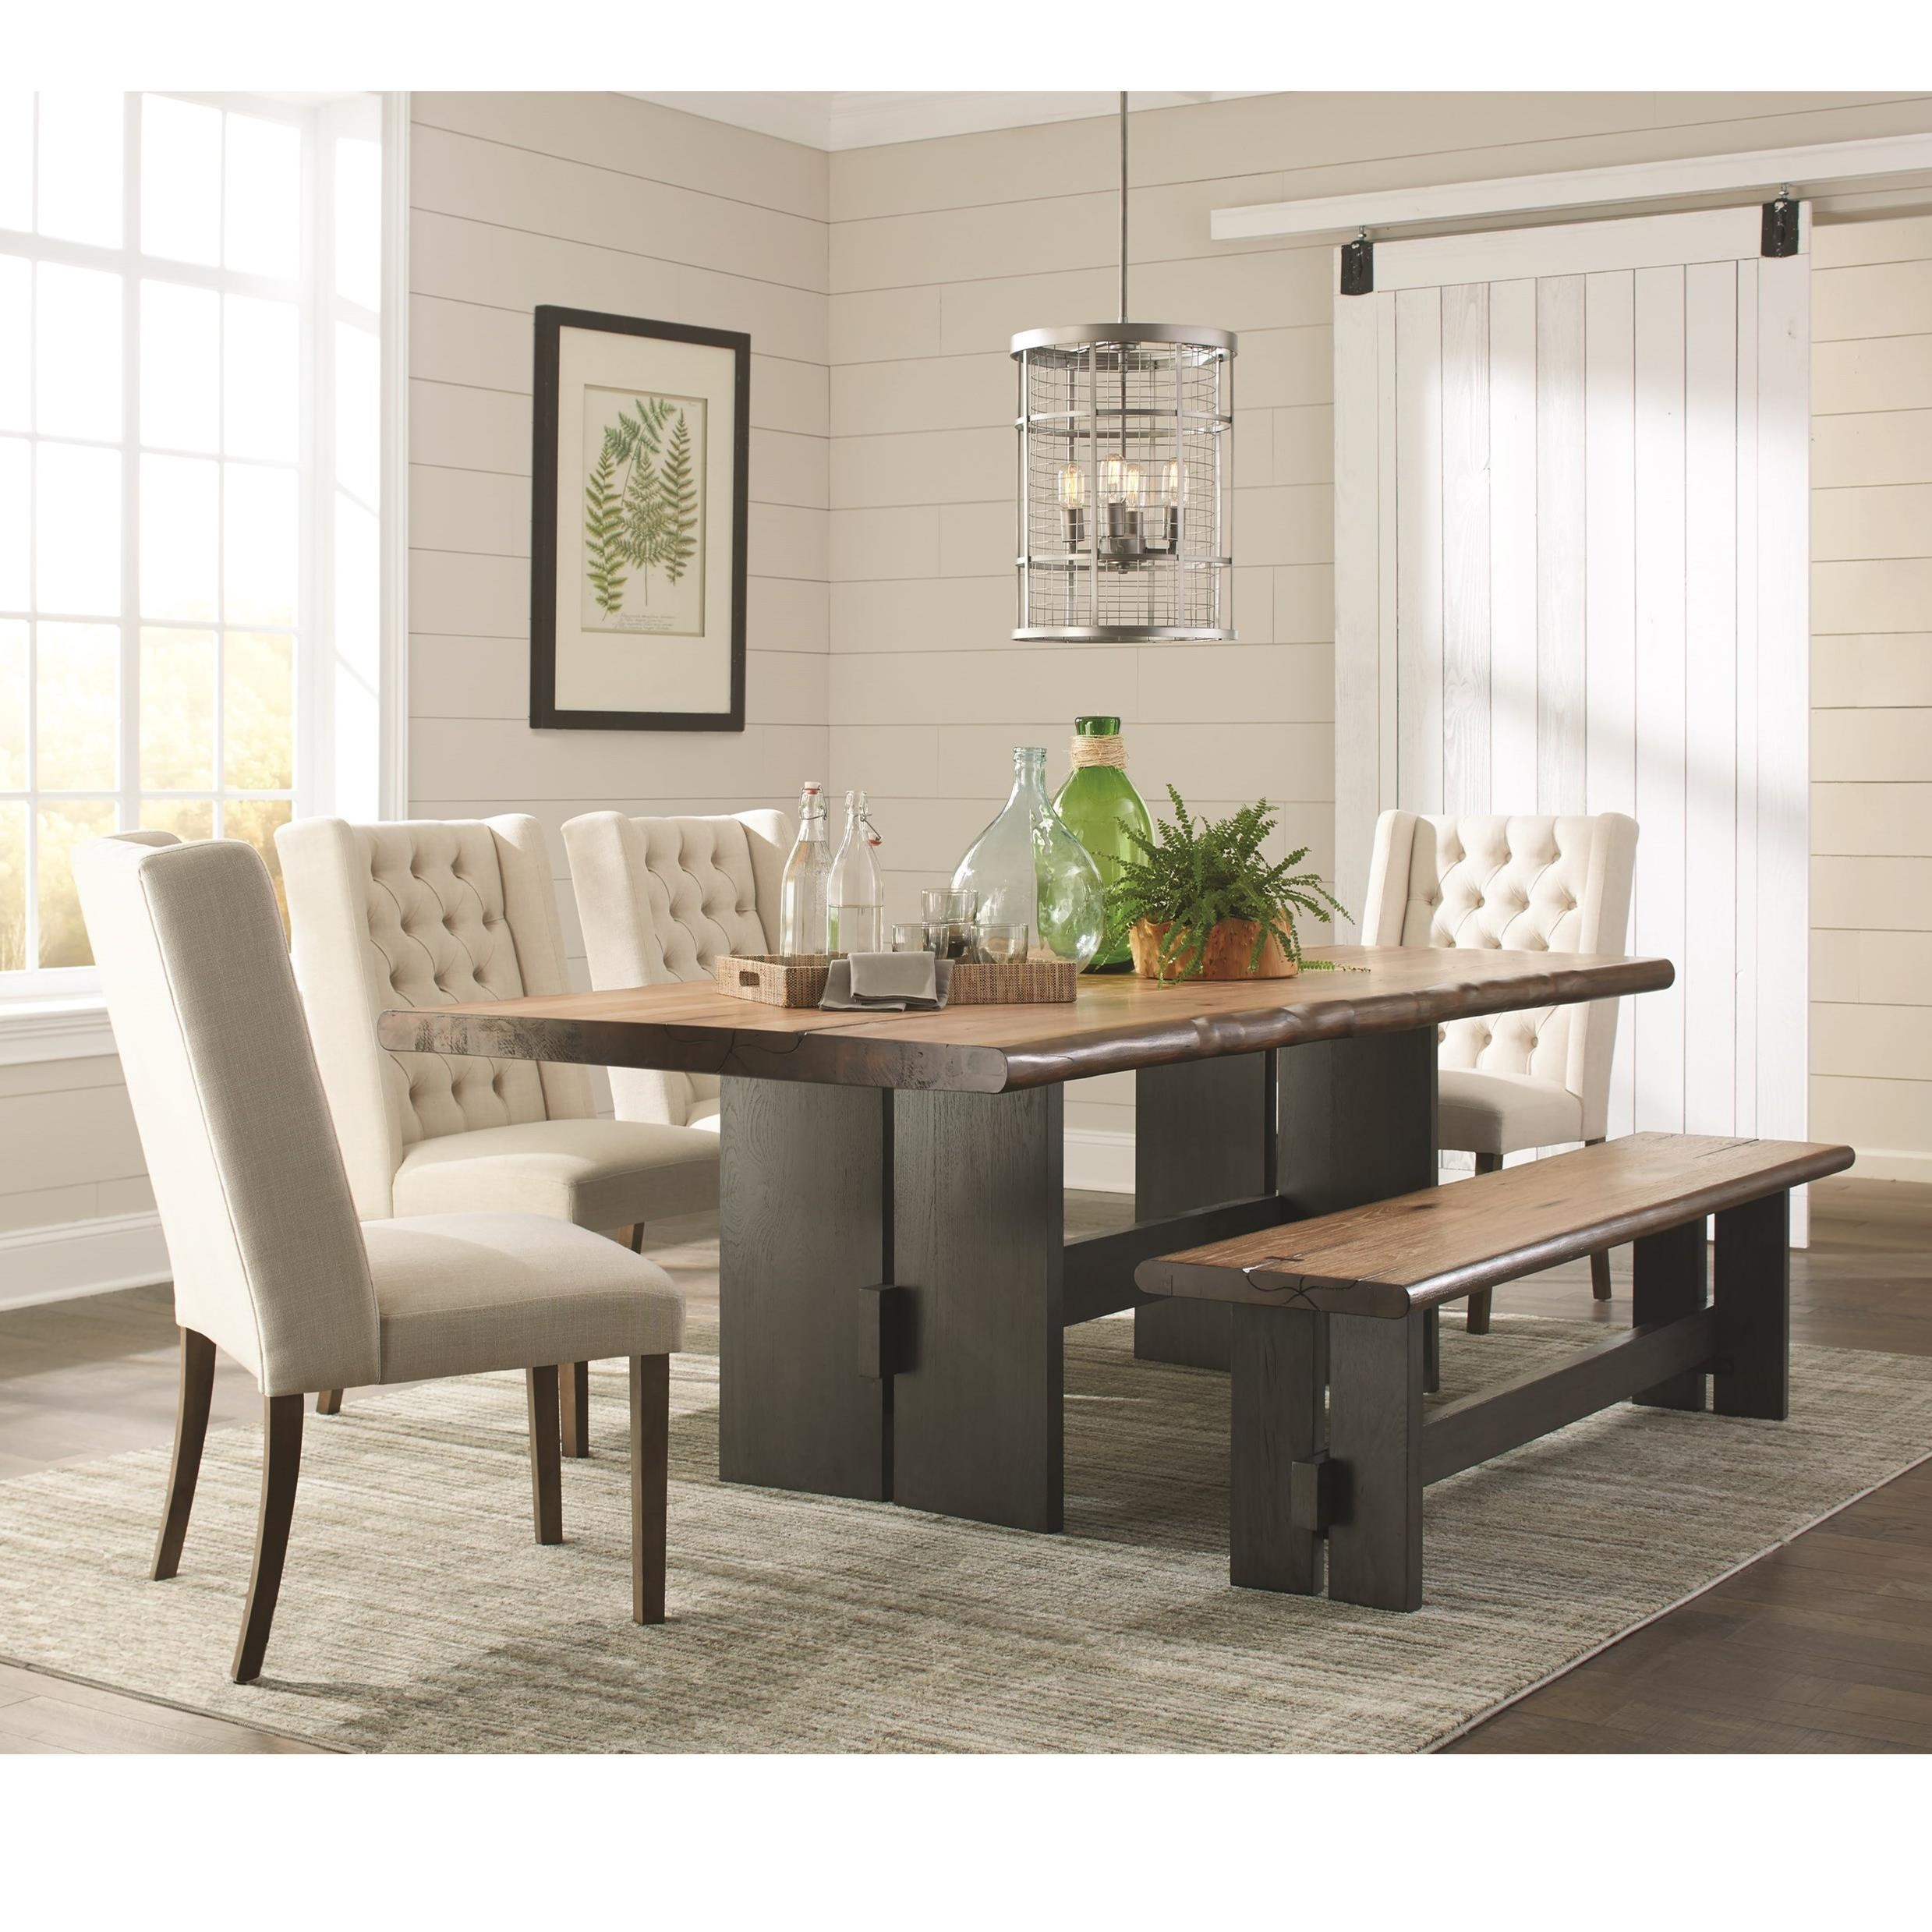 Marquette Rustic Live Edge Dining Table Set With Bench By Scott Living At Value City Furniture